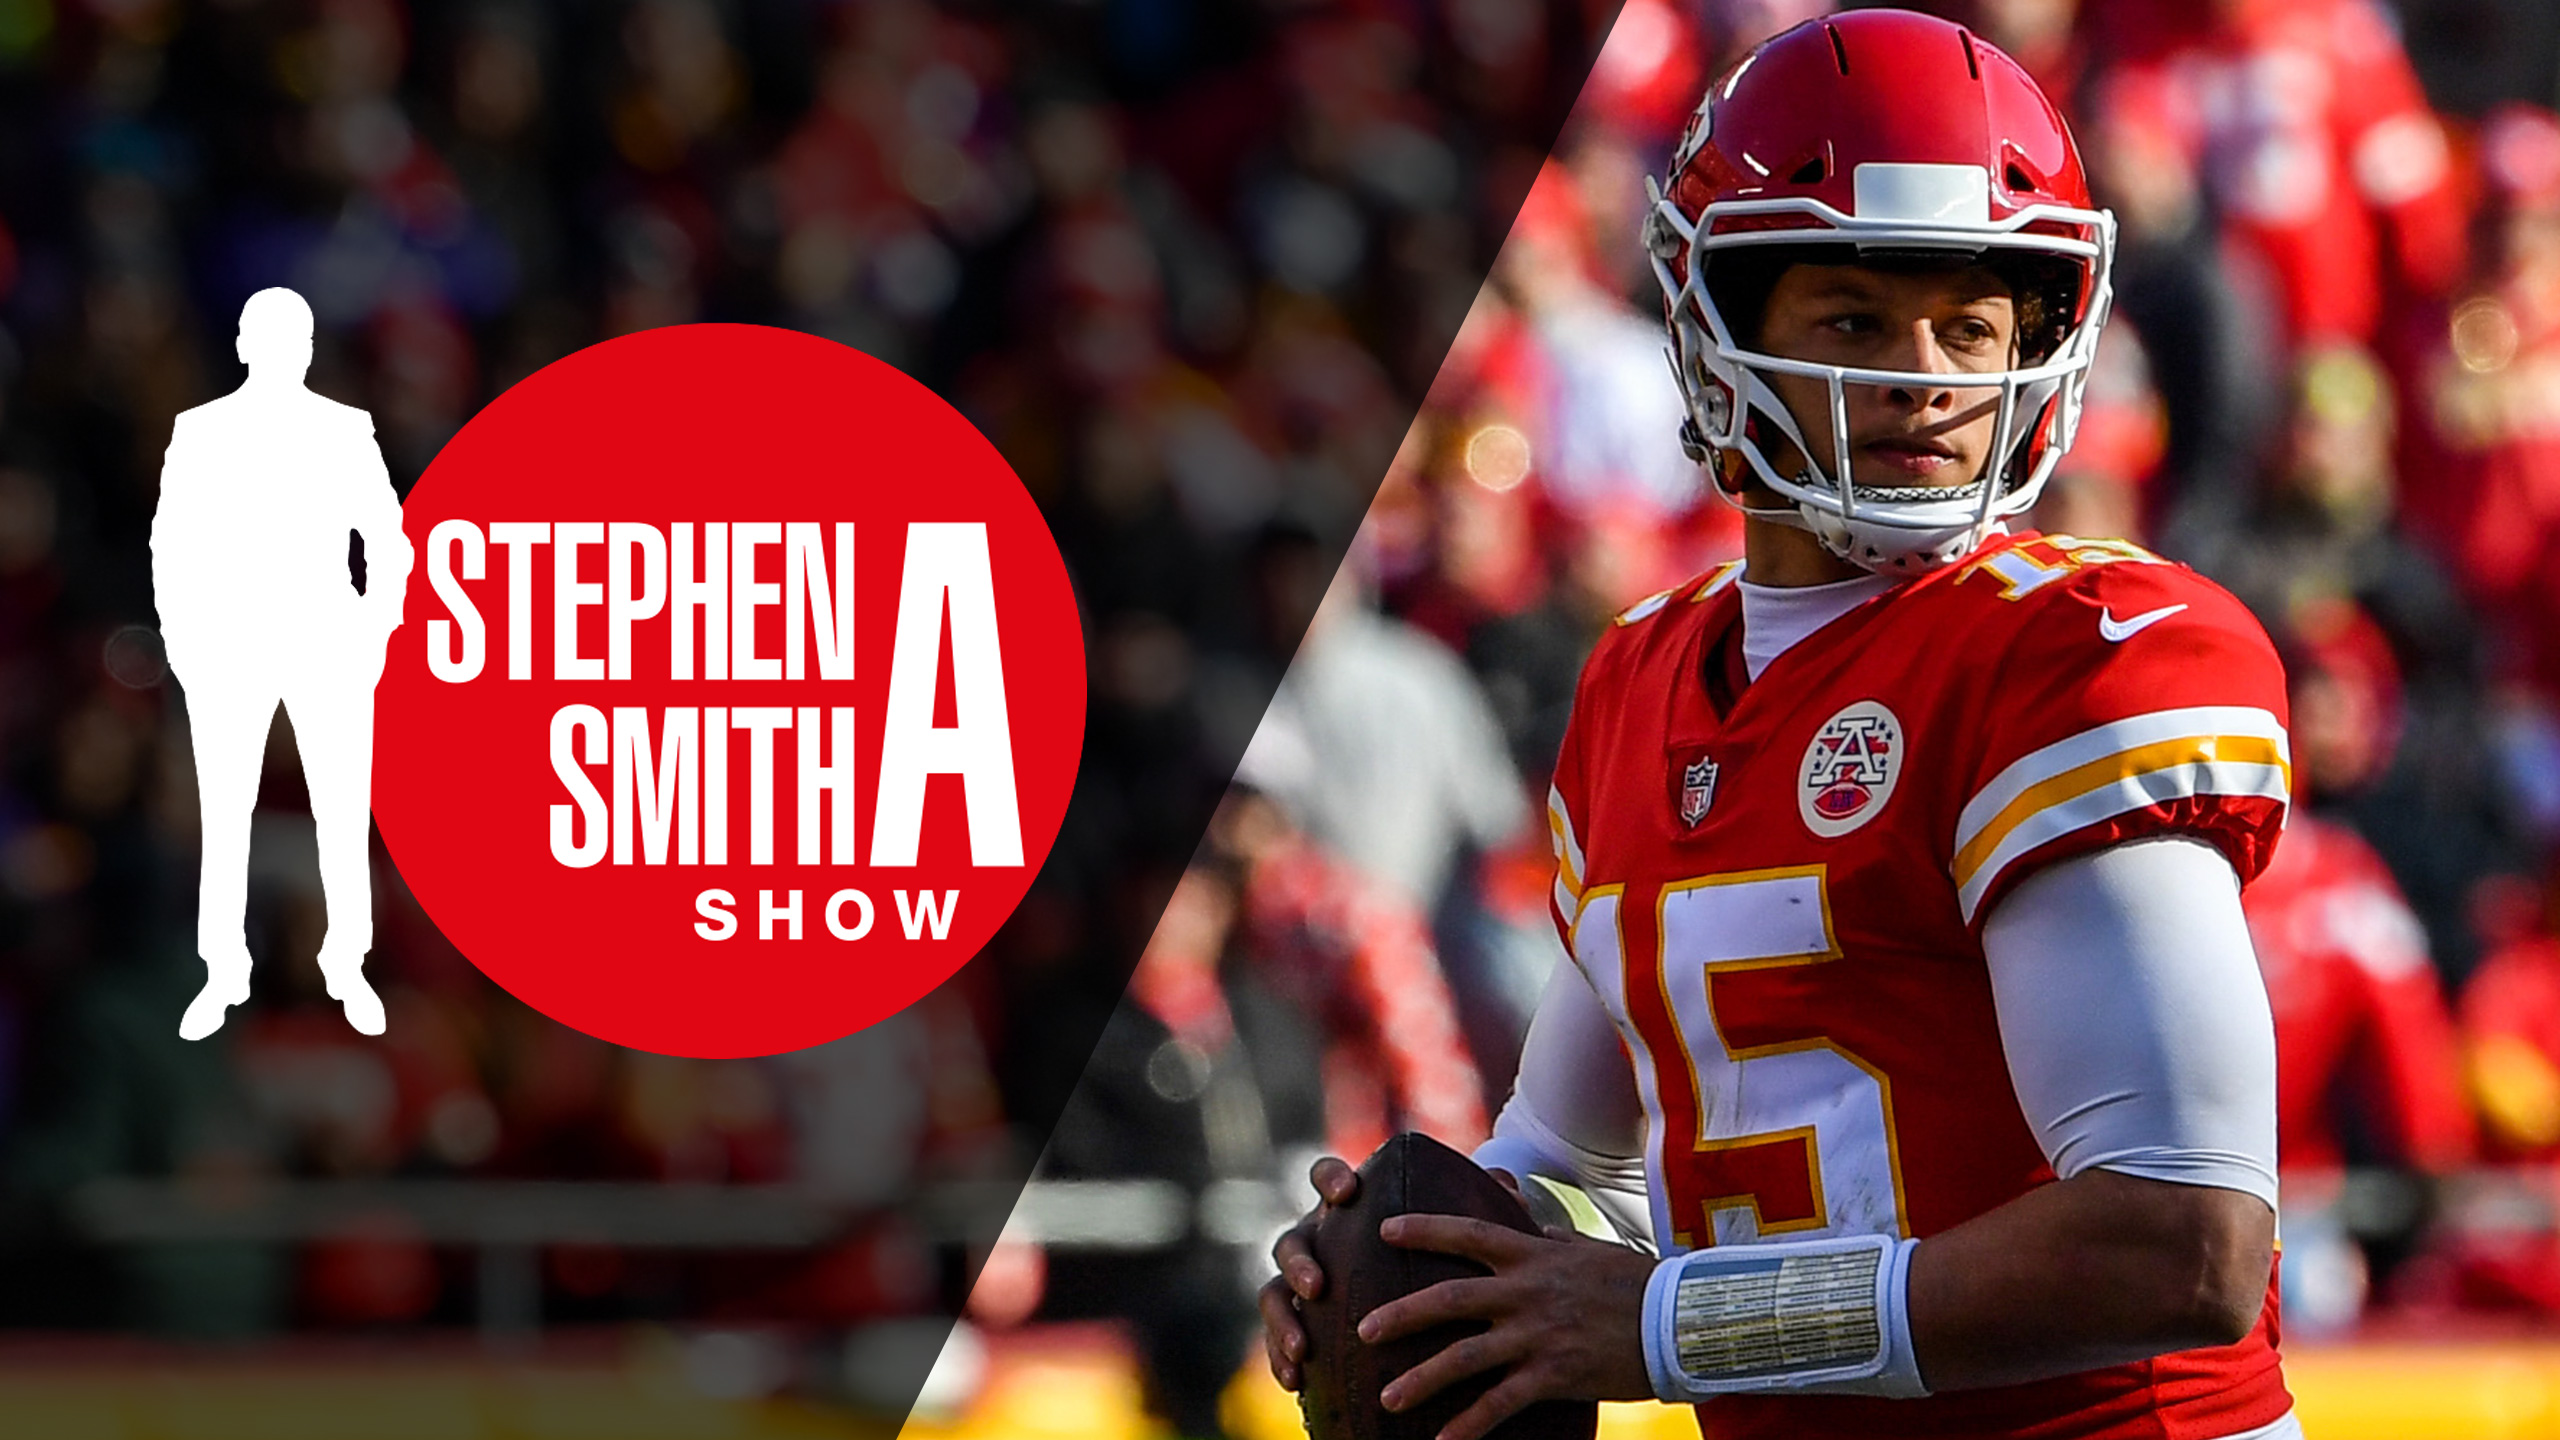 Thu, 12/13 - The Stephen A. Smith Show